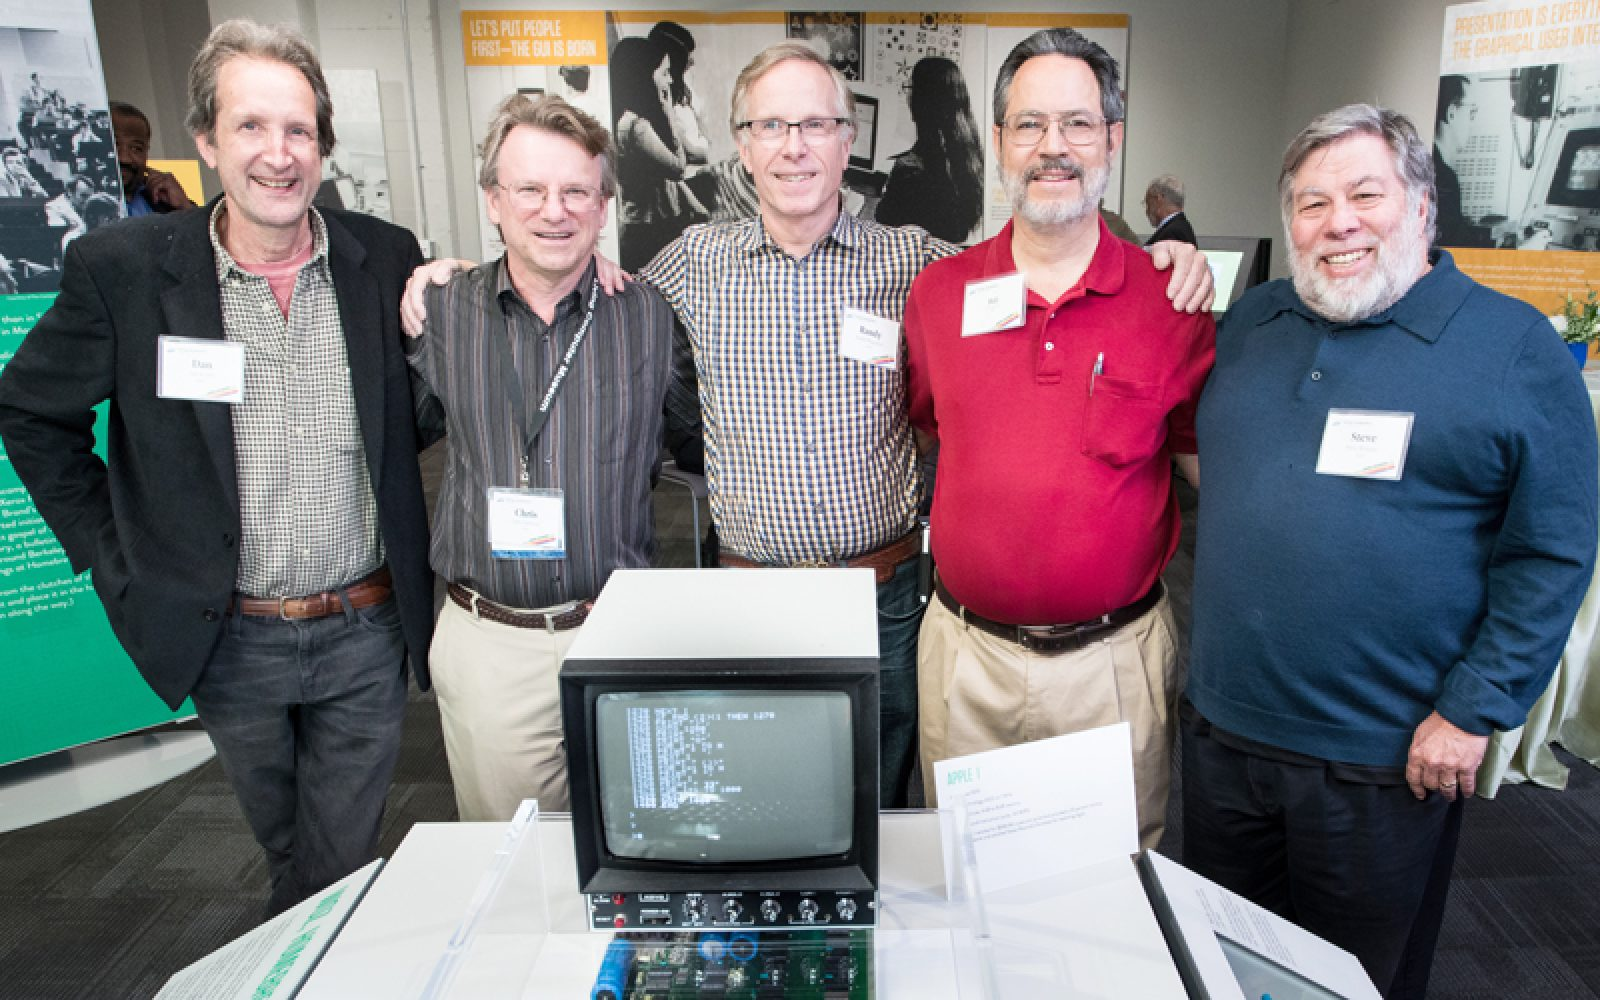 Apple will still be here in 2075, says Woz, as original Apple I garage team get together